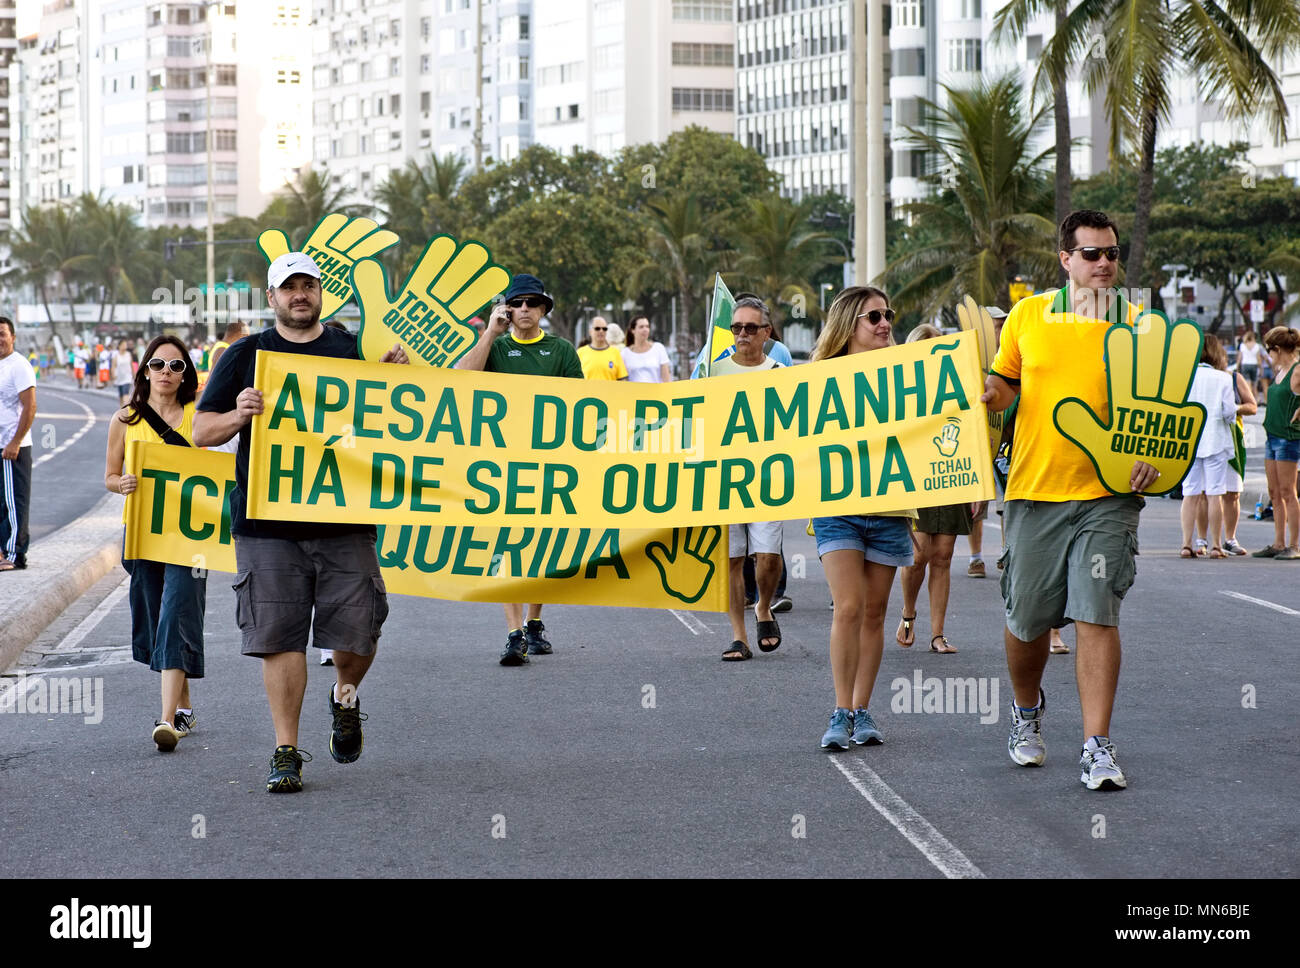 Copacabana, Rio de Janeiro - April 17, 2016: Demonstrators protest against the Brazilian Workers Party and the government of President Dilma Rousseff - Stock Image